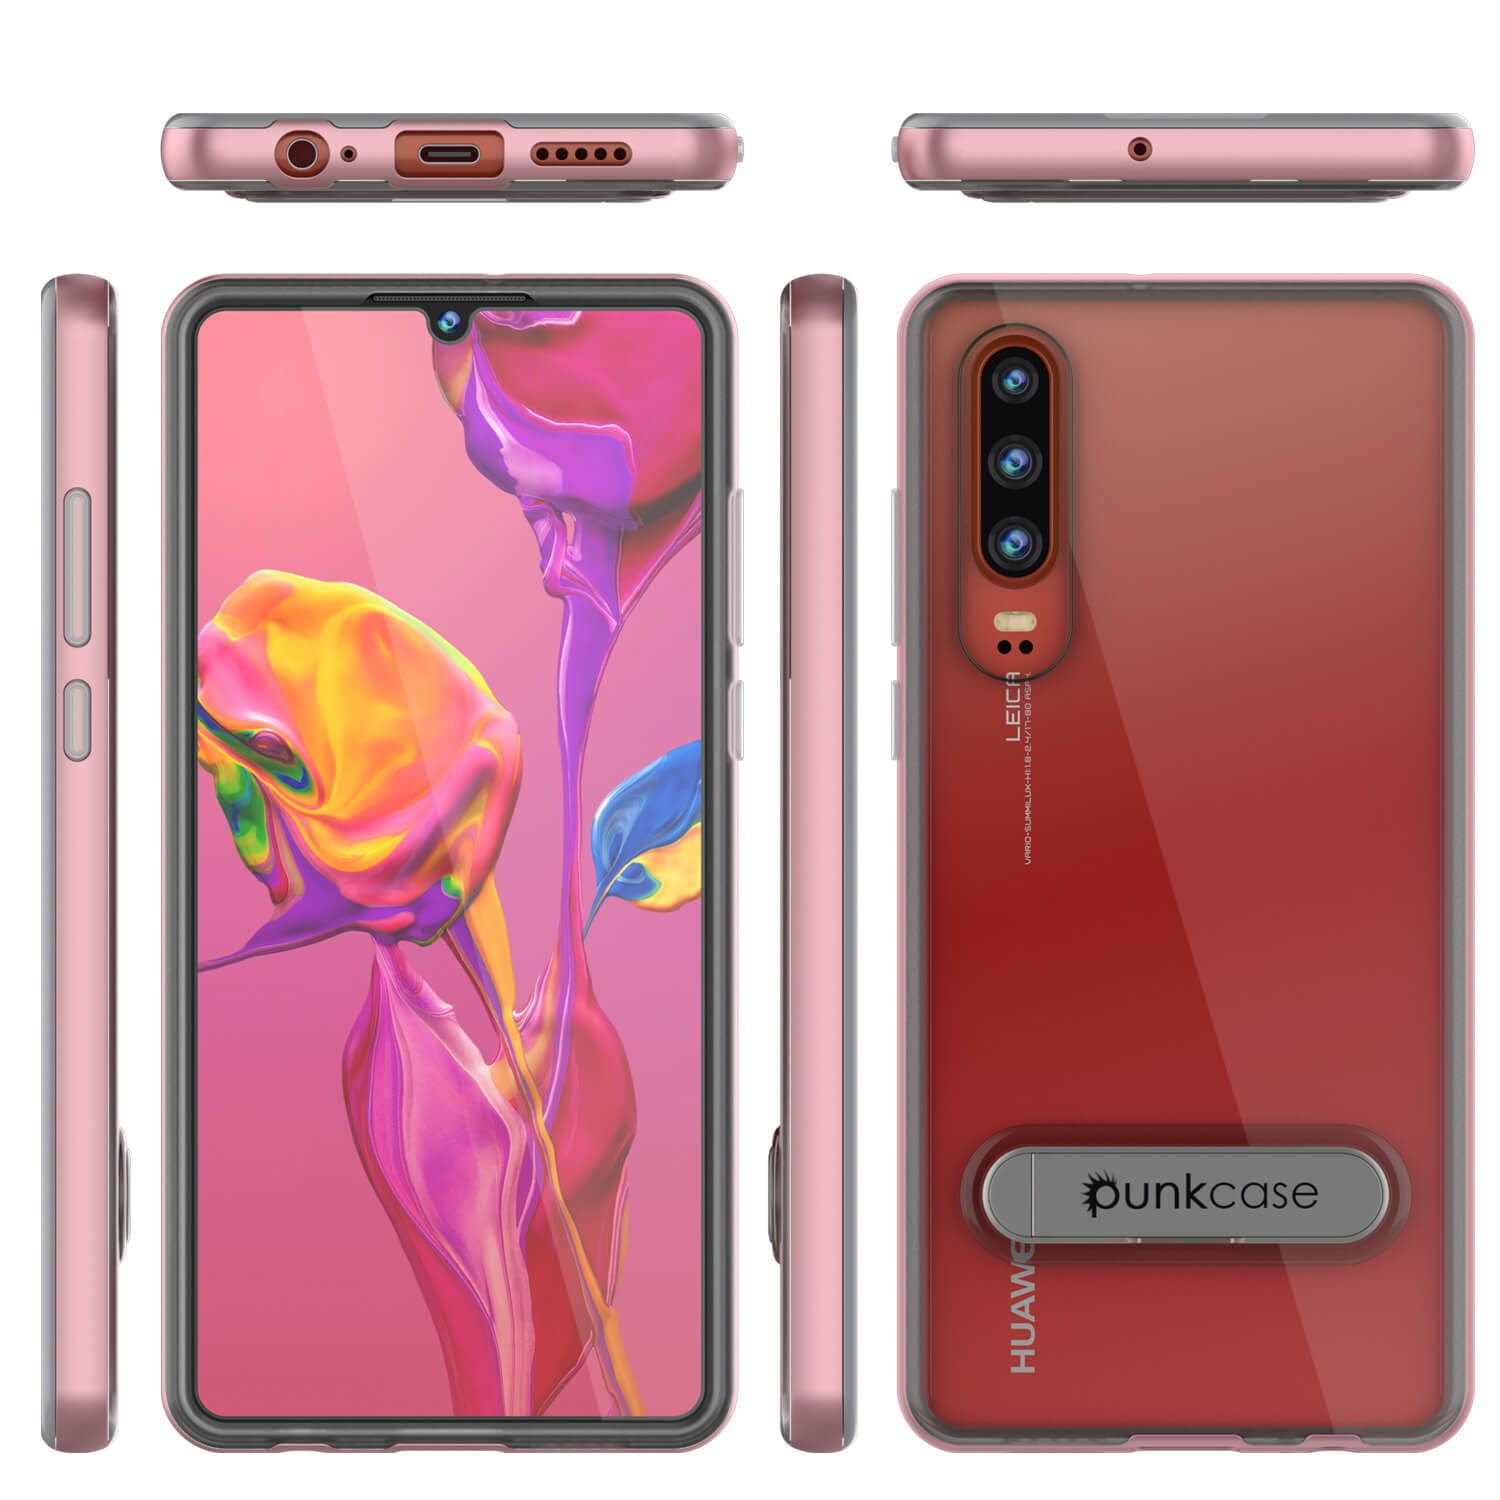 Punkcase P30 Pro Case [Lucid 3.0 Series] Armor Cover [Rose Gold]